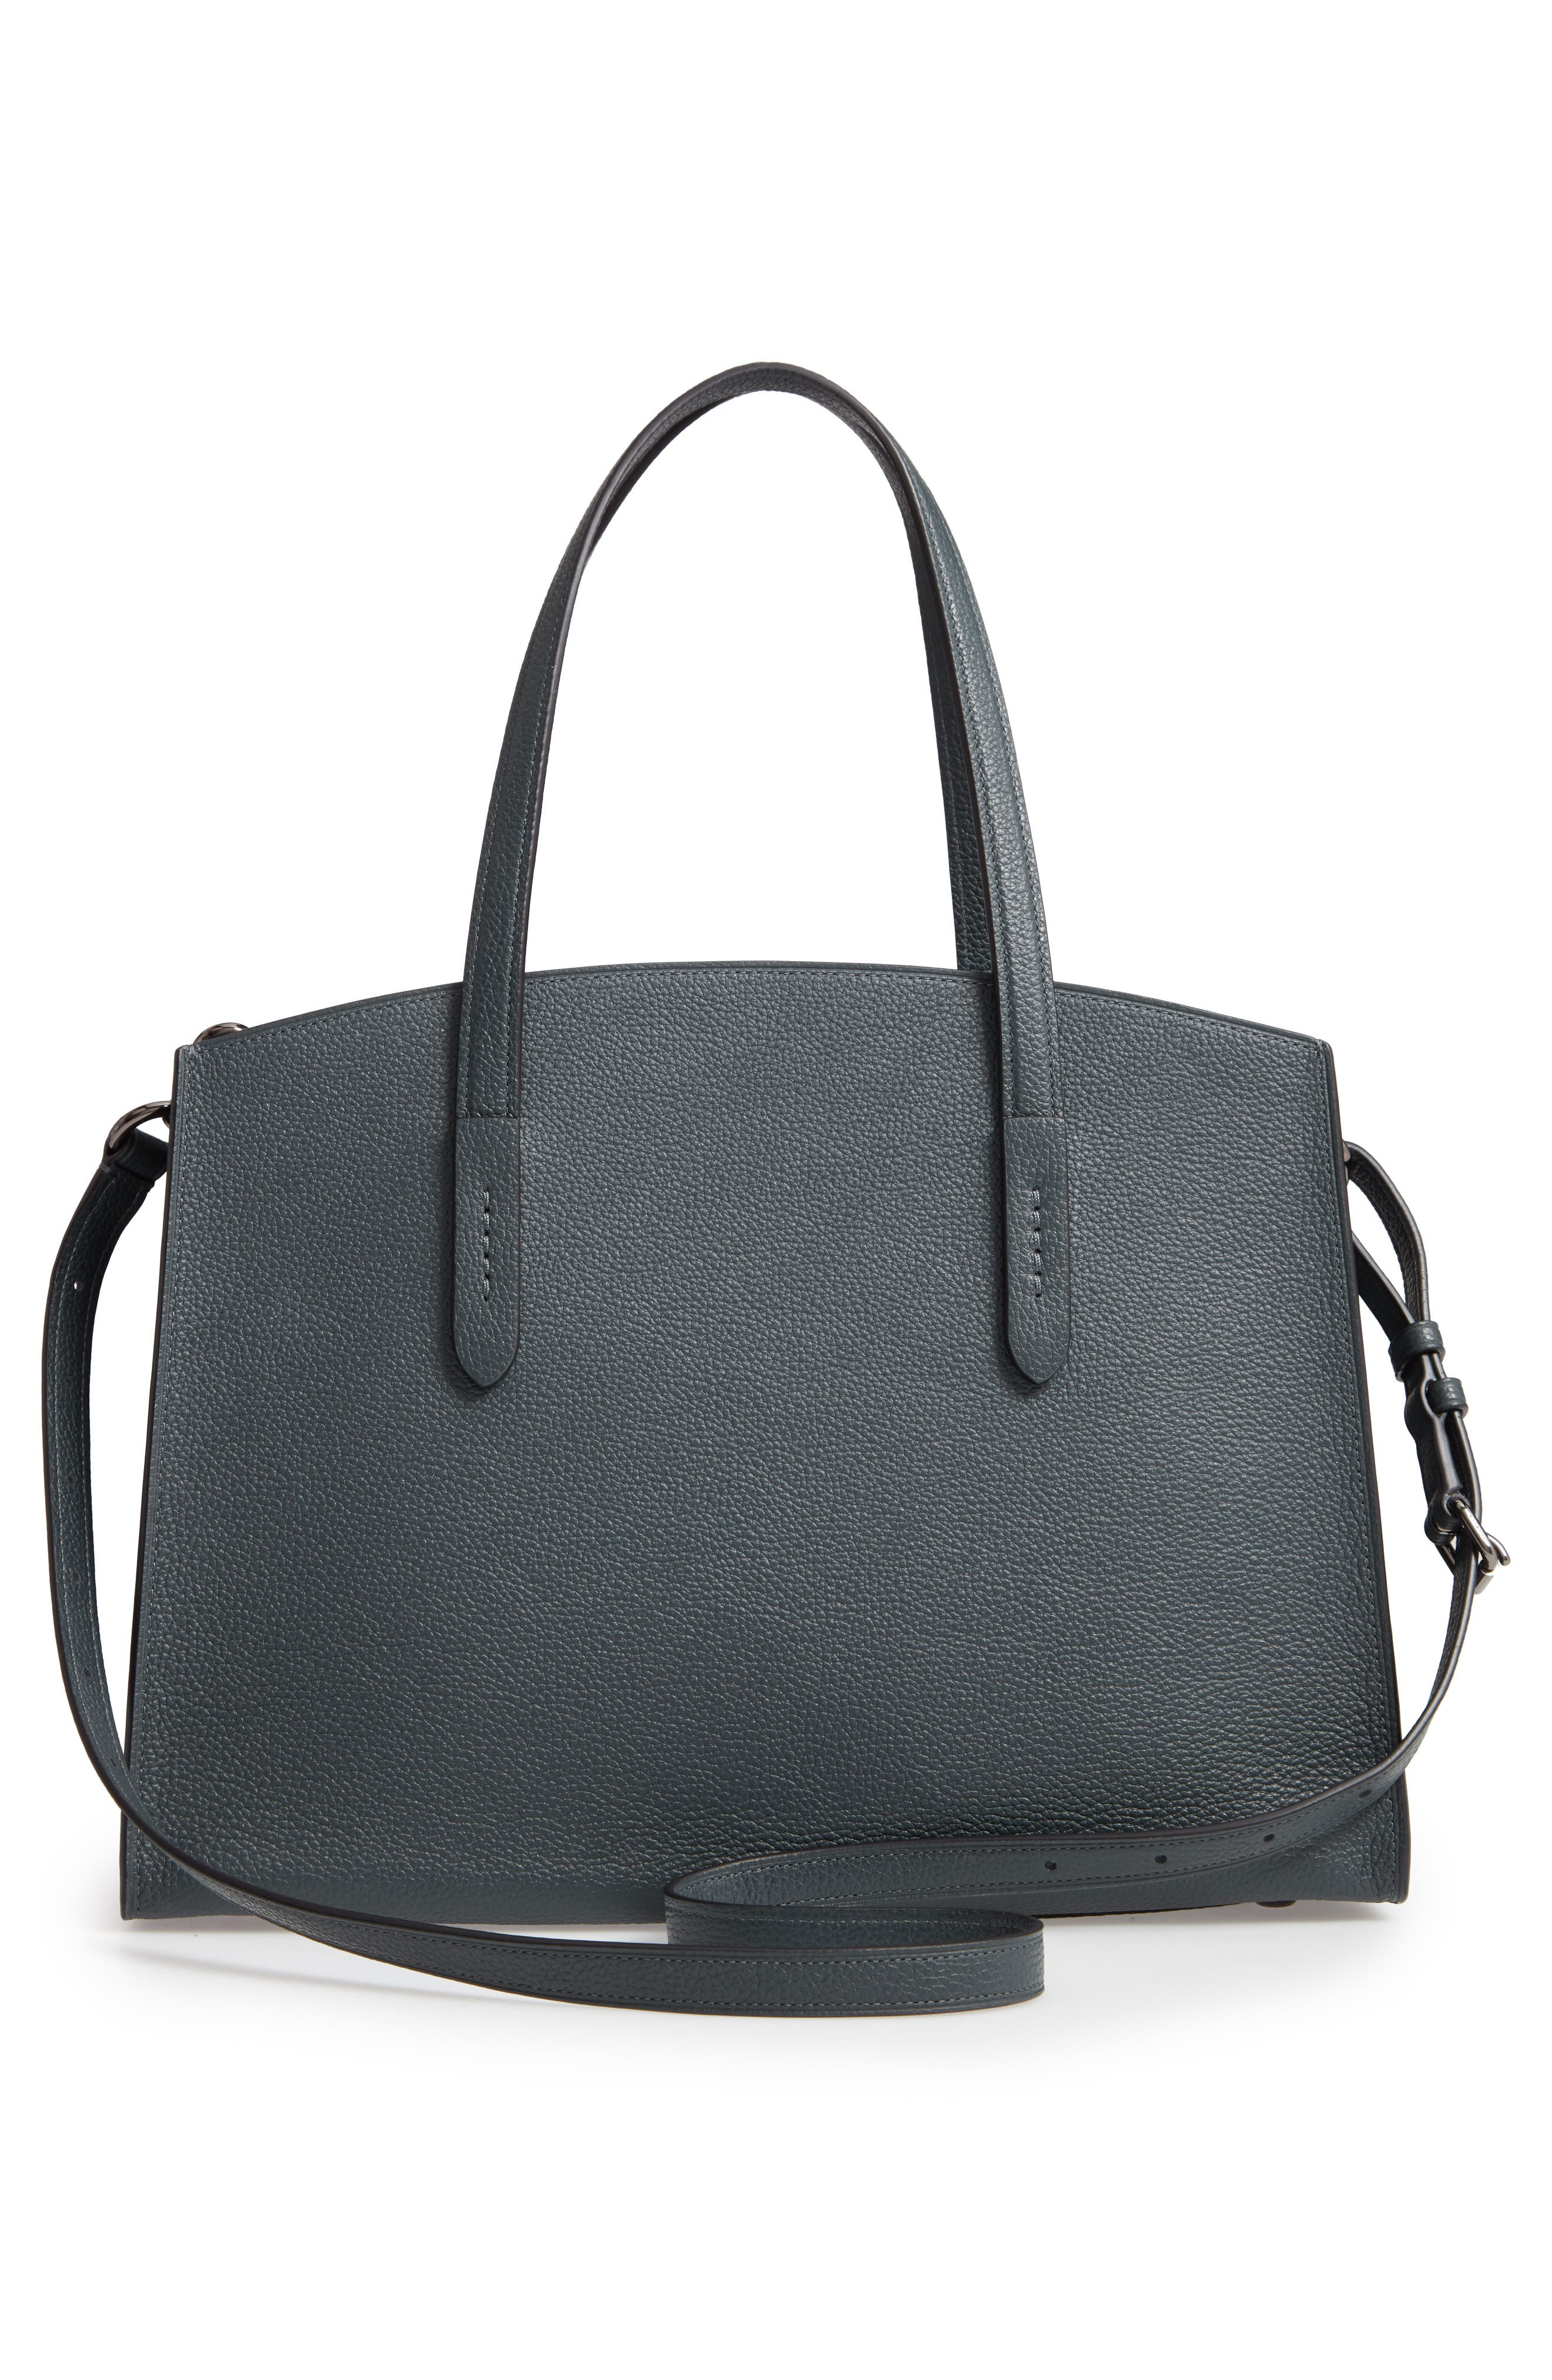 Charlie Leather Tote,                             Alternate thumbnail 3, color,                             CYPRESS